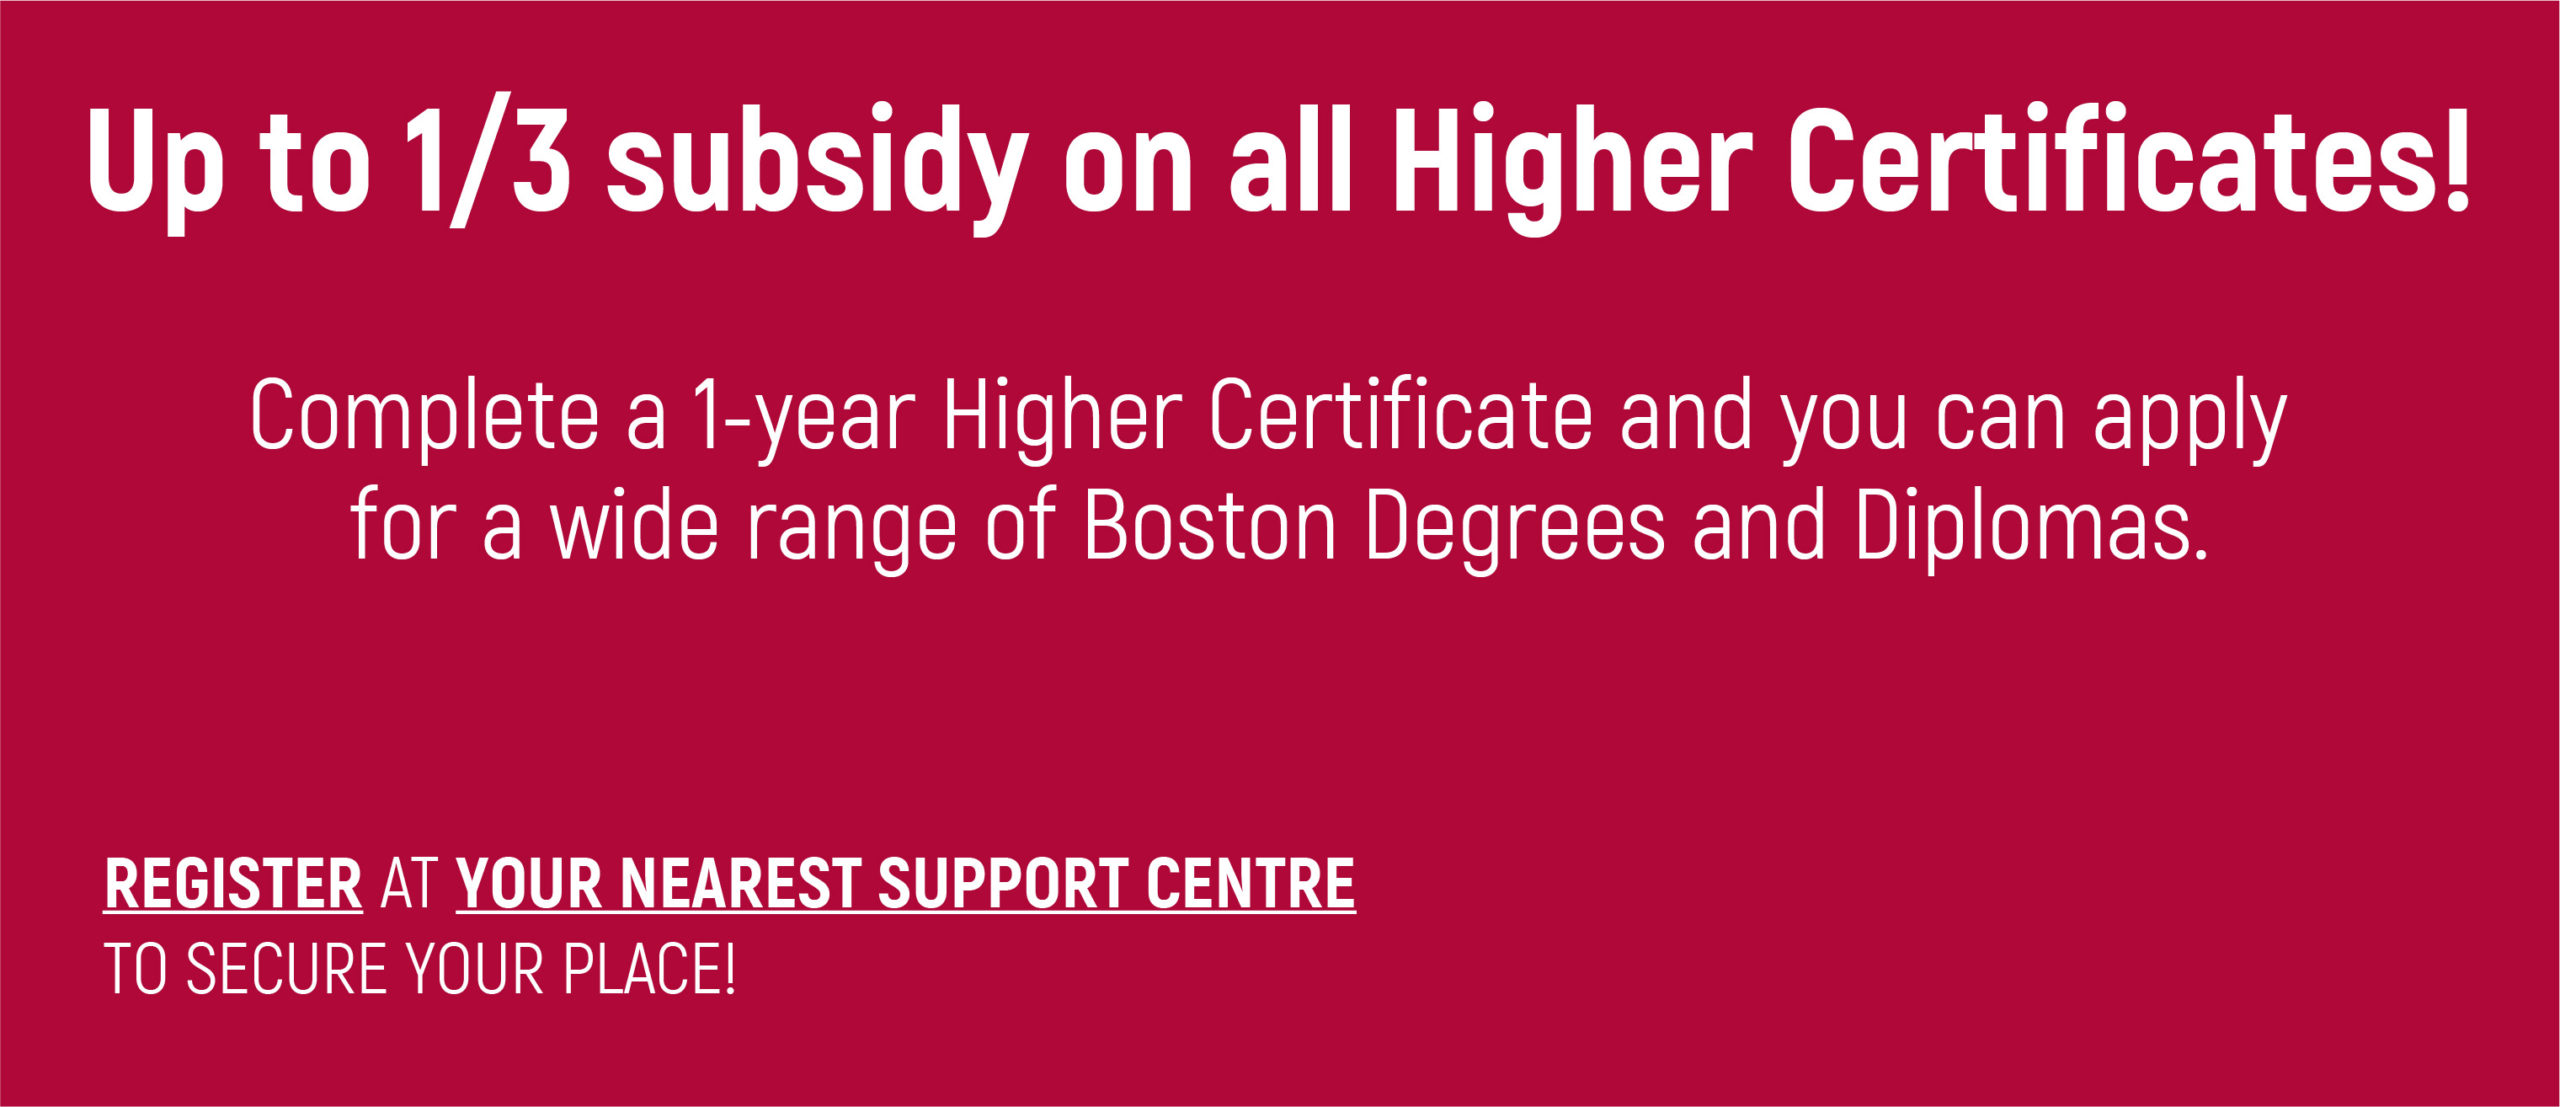 30% Subsidy on all Higher Certificates